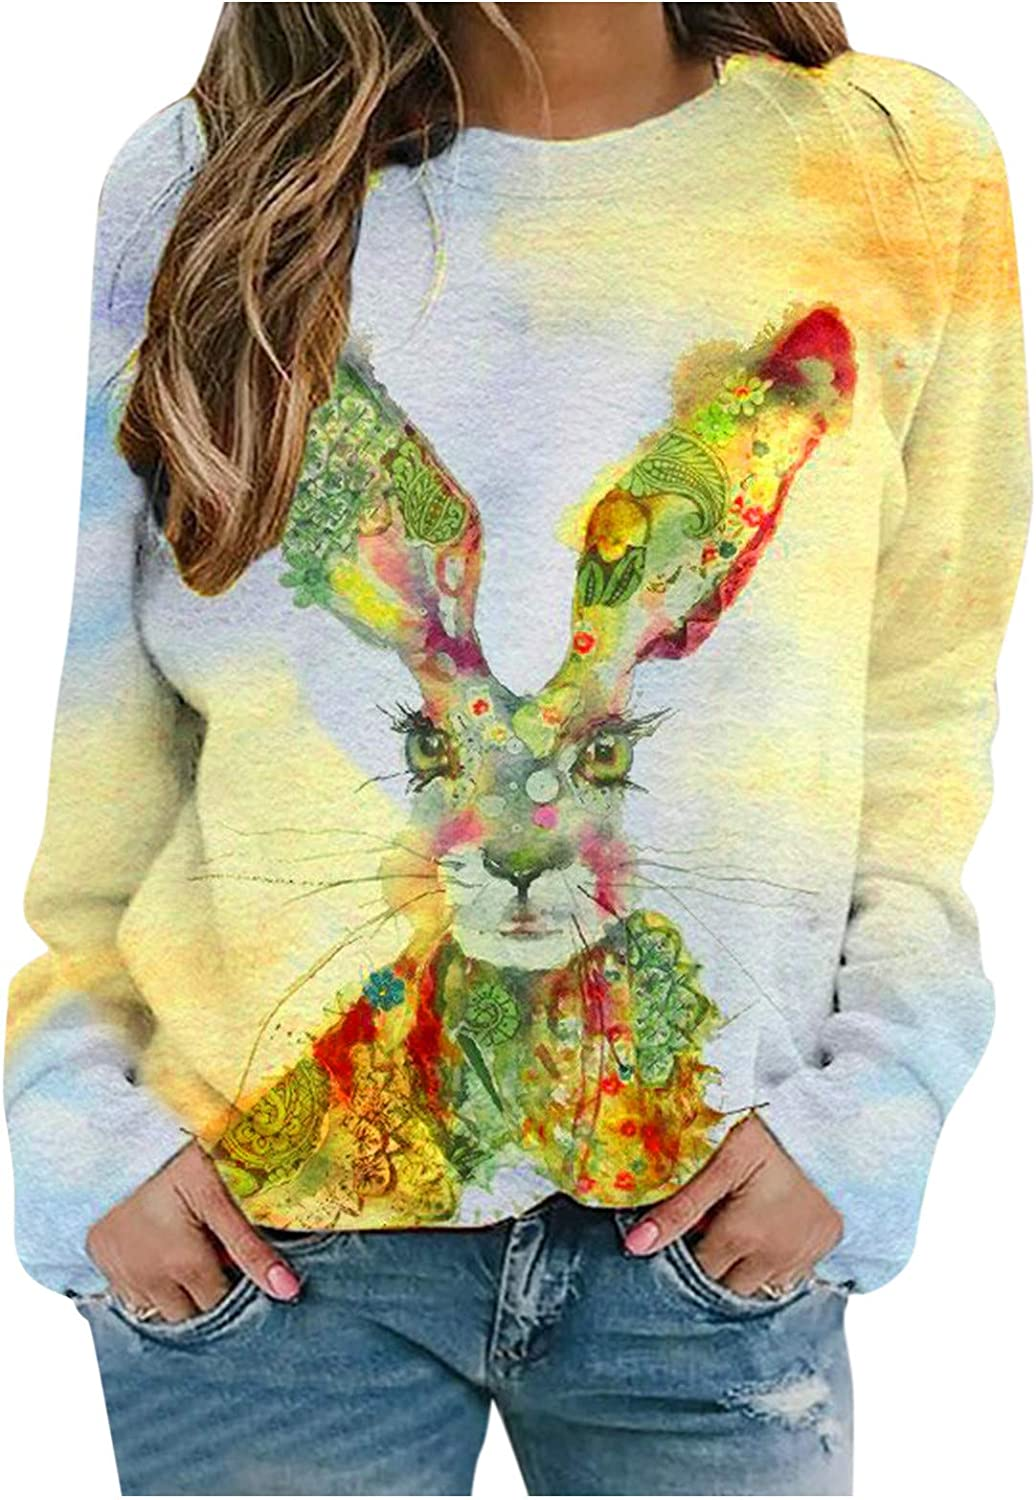 Nulairt Sales of SALE items from new works Pullover Tops for Women Ca Animal Cheap bargain Sweatshirts Print Cute